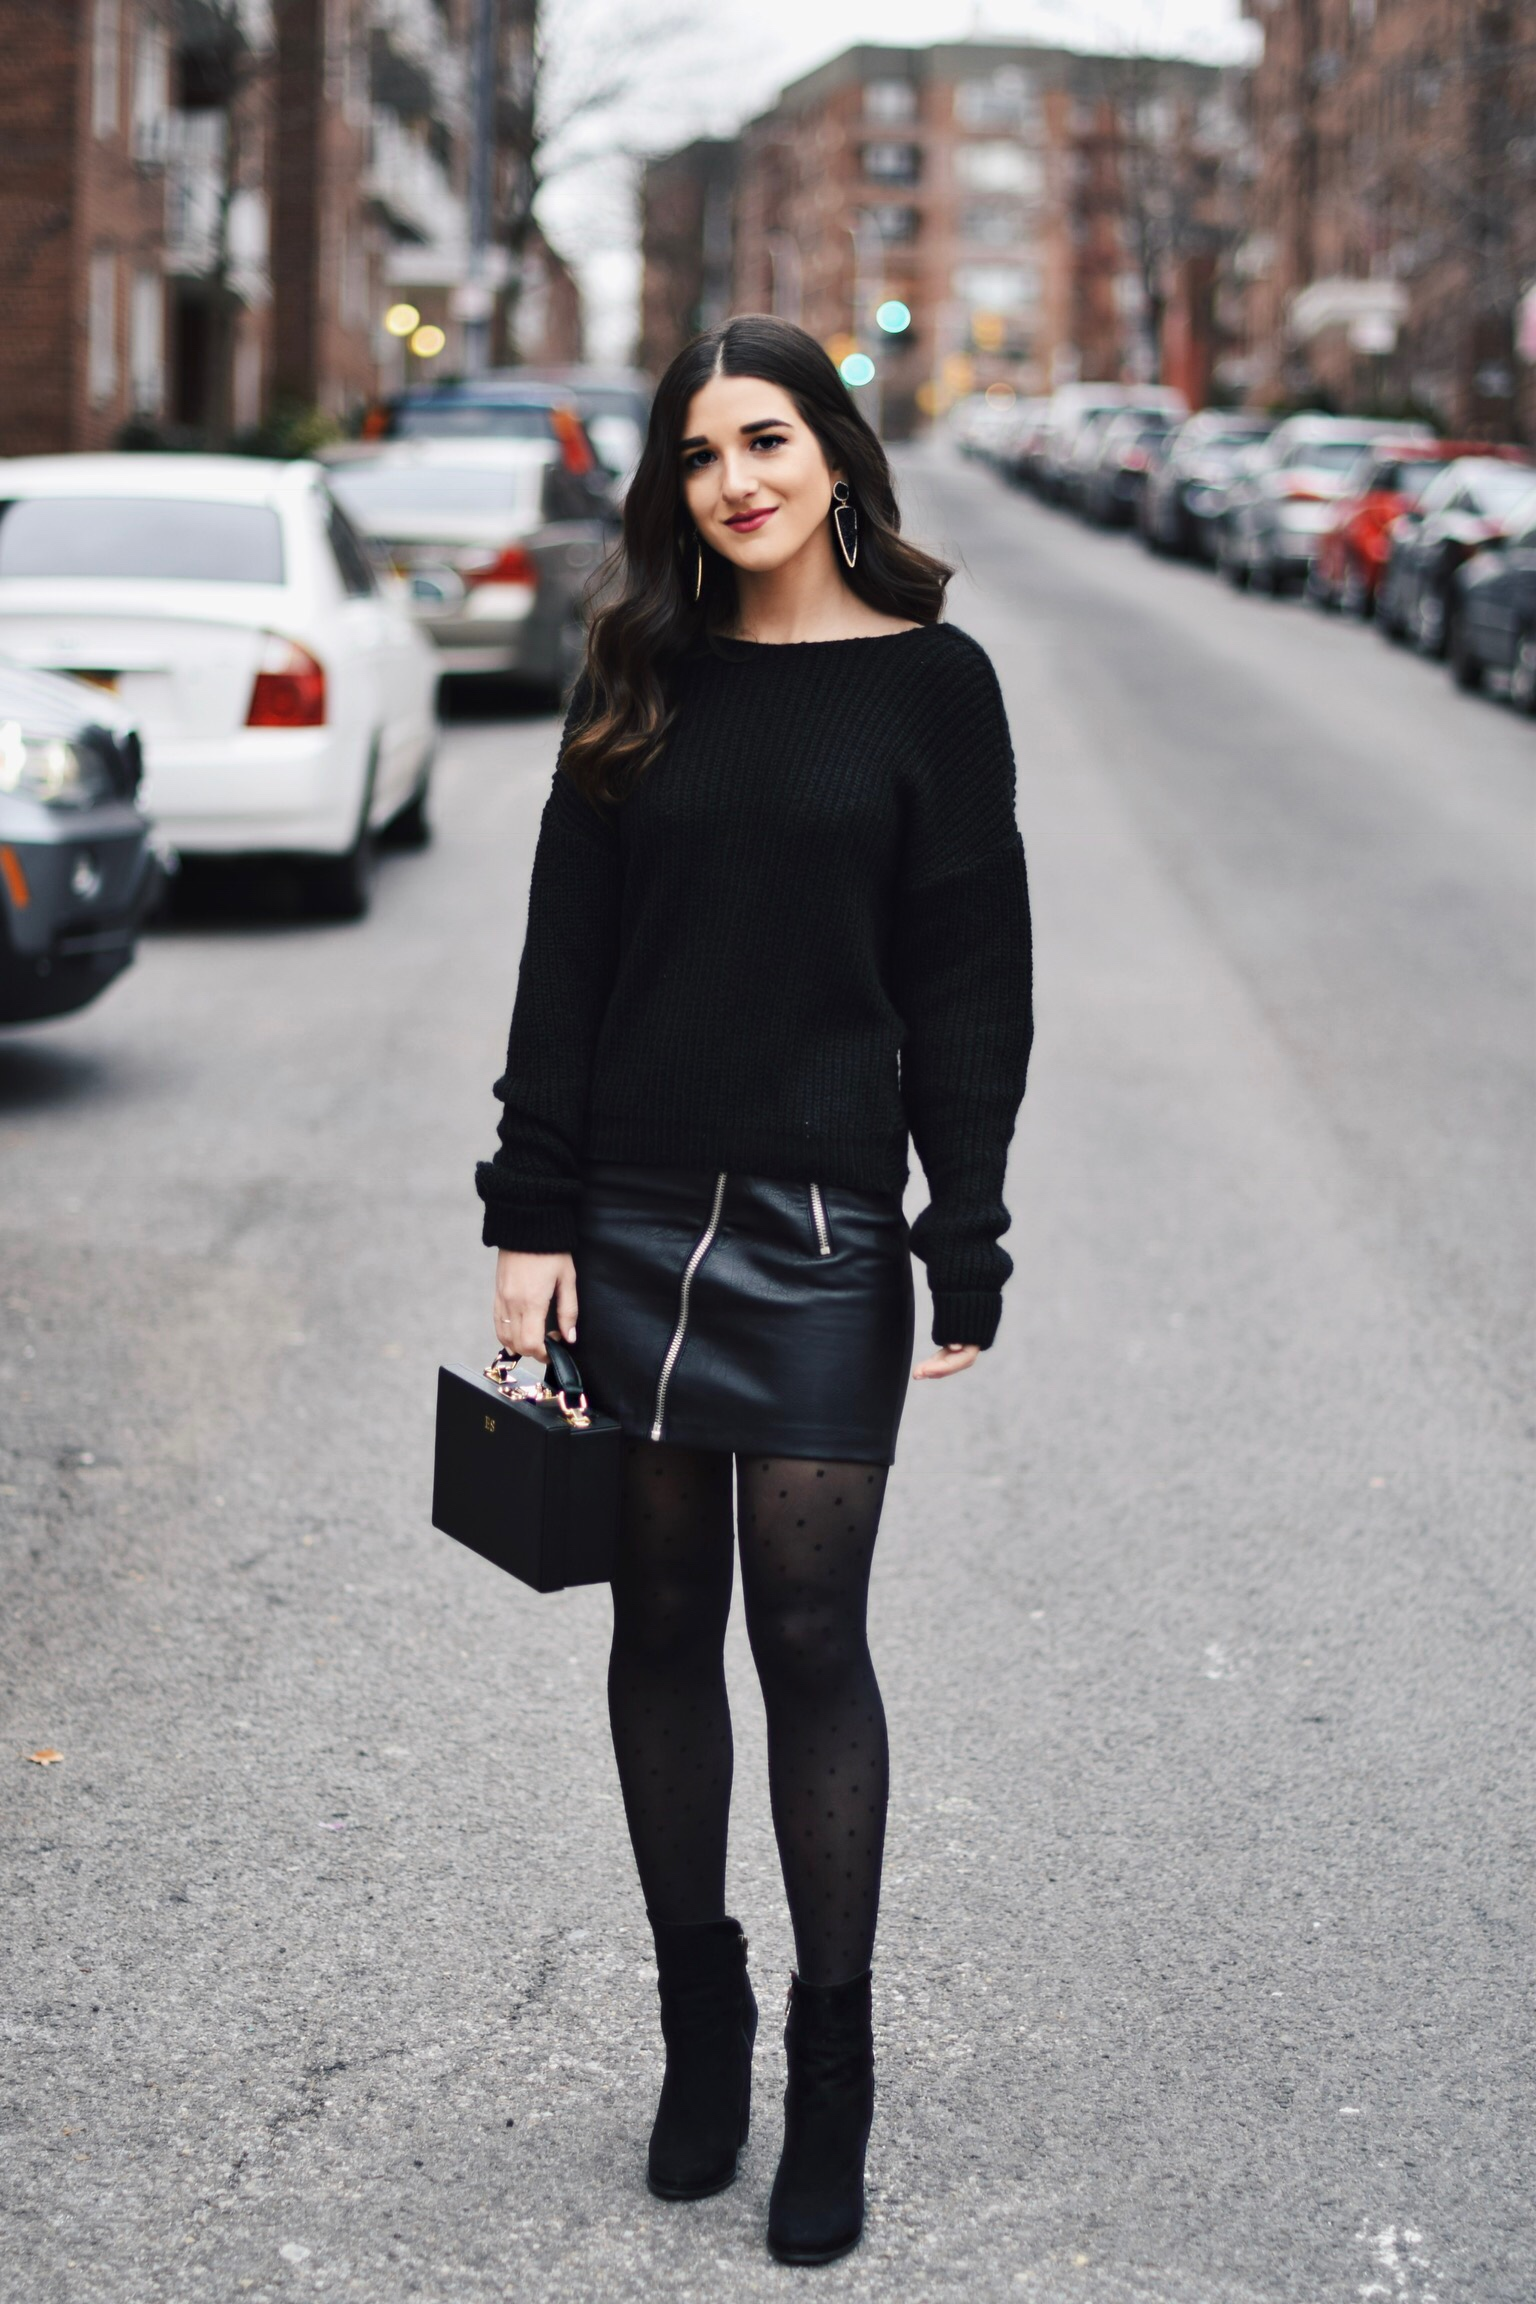 All Black Look 5 Ways To Keep Your New Year's Resolution Going Strong Esther Santer Fashion Blog NYC Street Style Blogger Outfit OOTD Trendy BaubleBar Earrings Monogrammed Box Bag Daily Edited Girl Women Booties Pleather Mini Skirt Polka Dot Tights.jpg